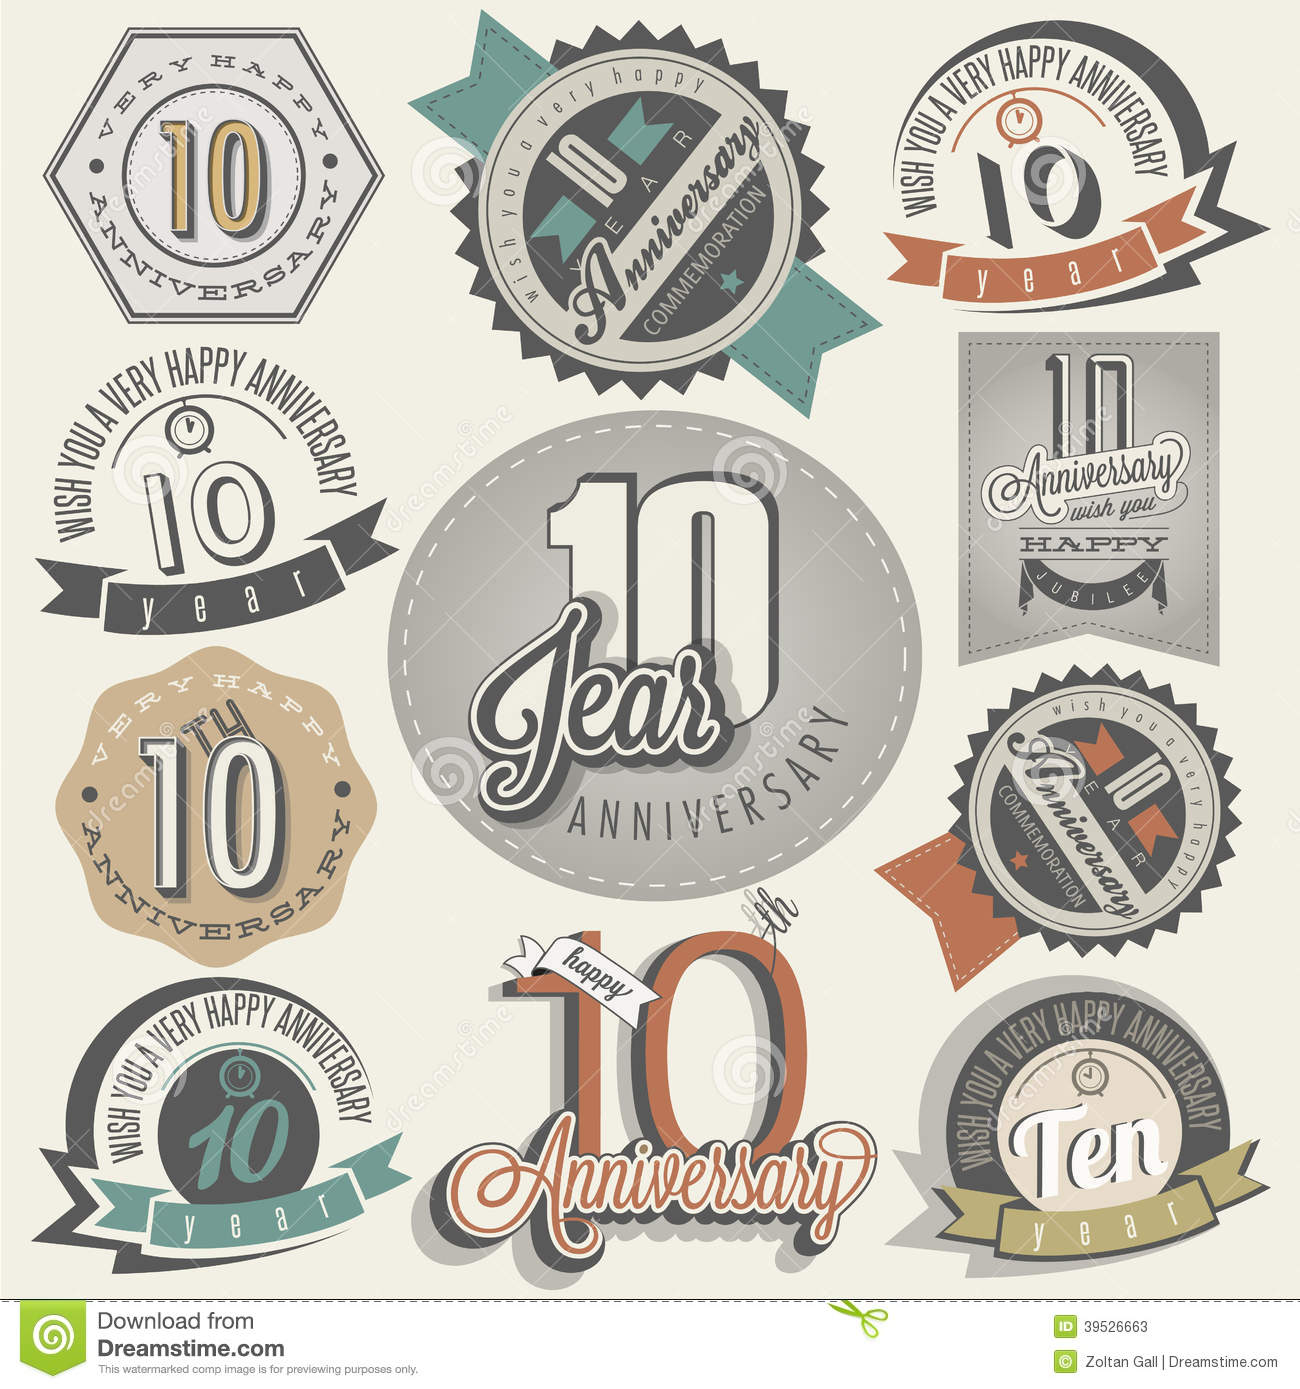 Vintage style 10 anniversary collection stock vector vintage style 10 anniversary collection biocorpaavc